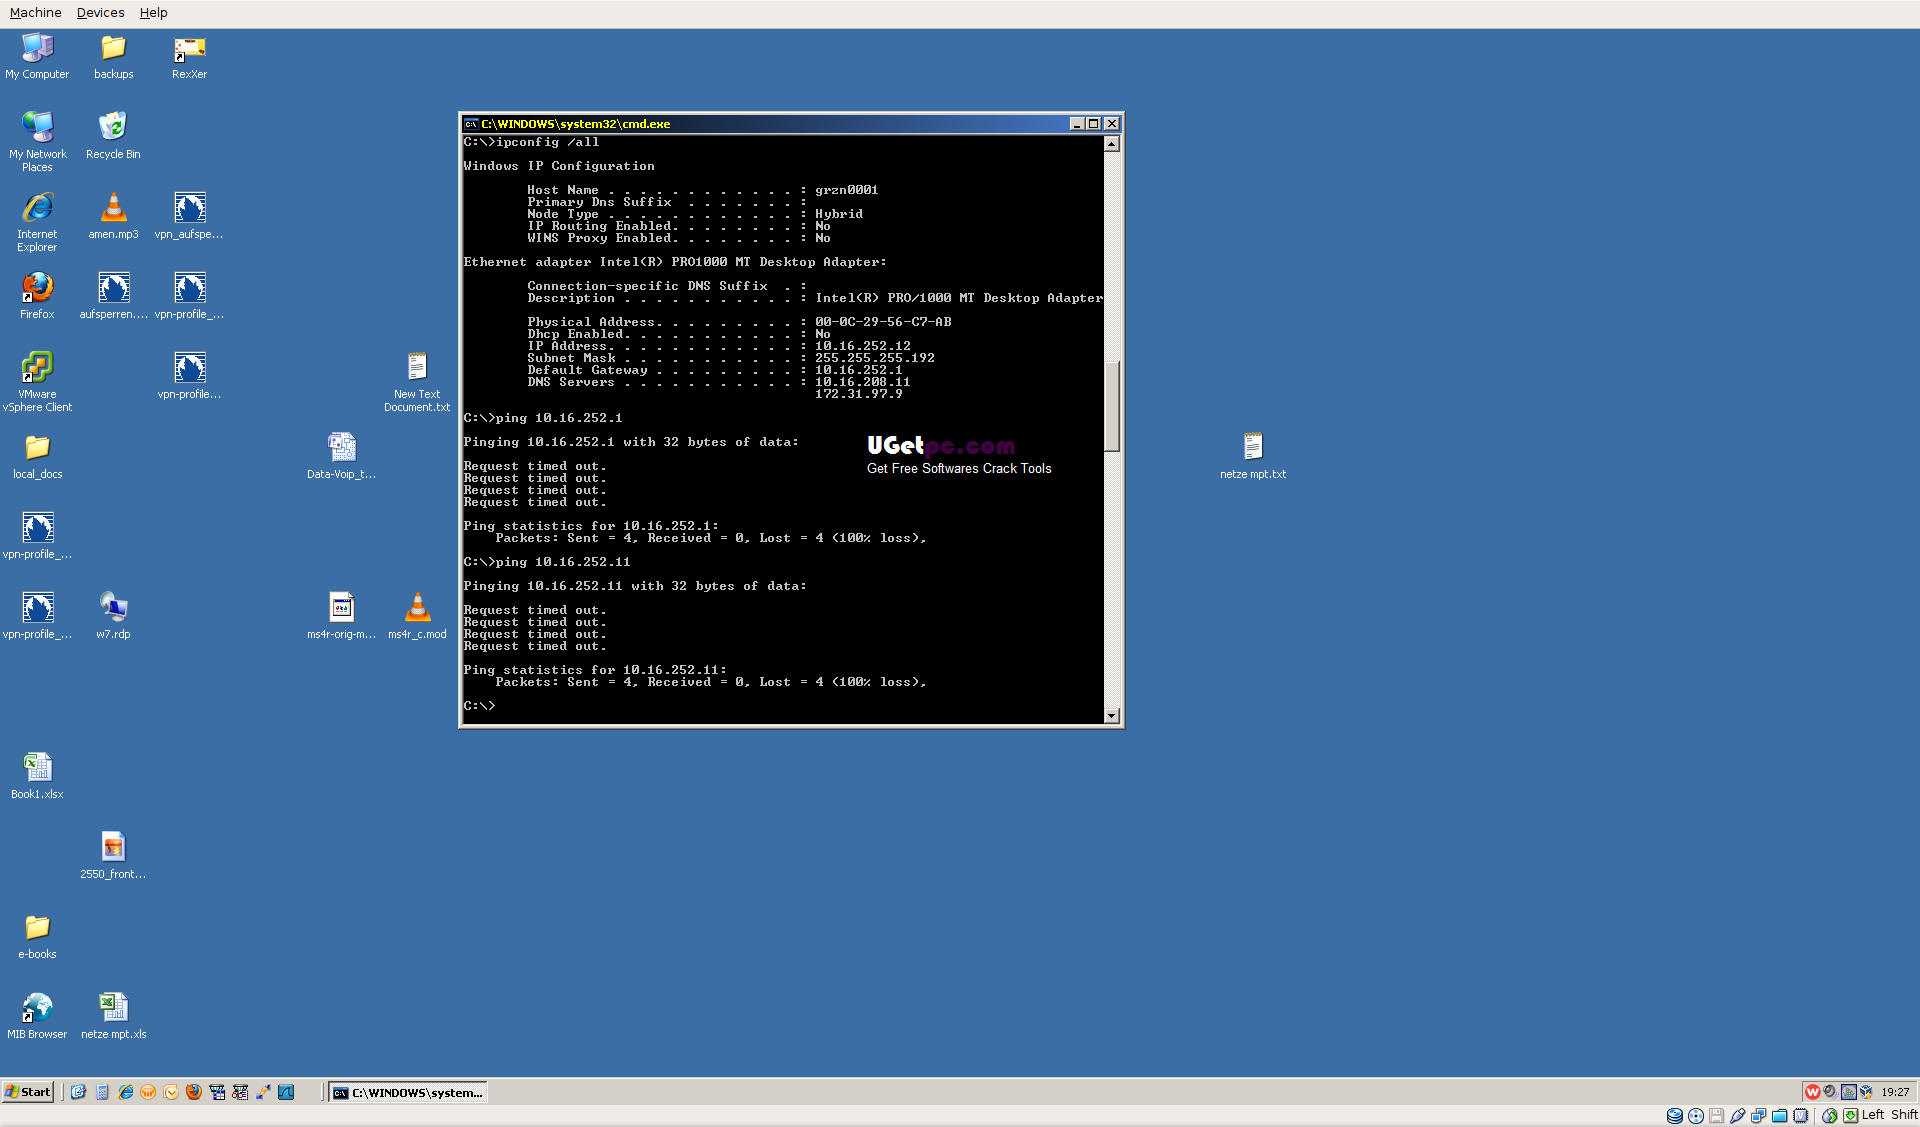 VIRTUALBOX-pic2-UGetpc